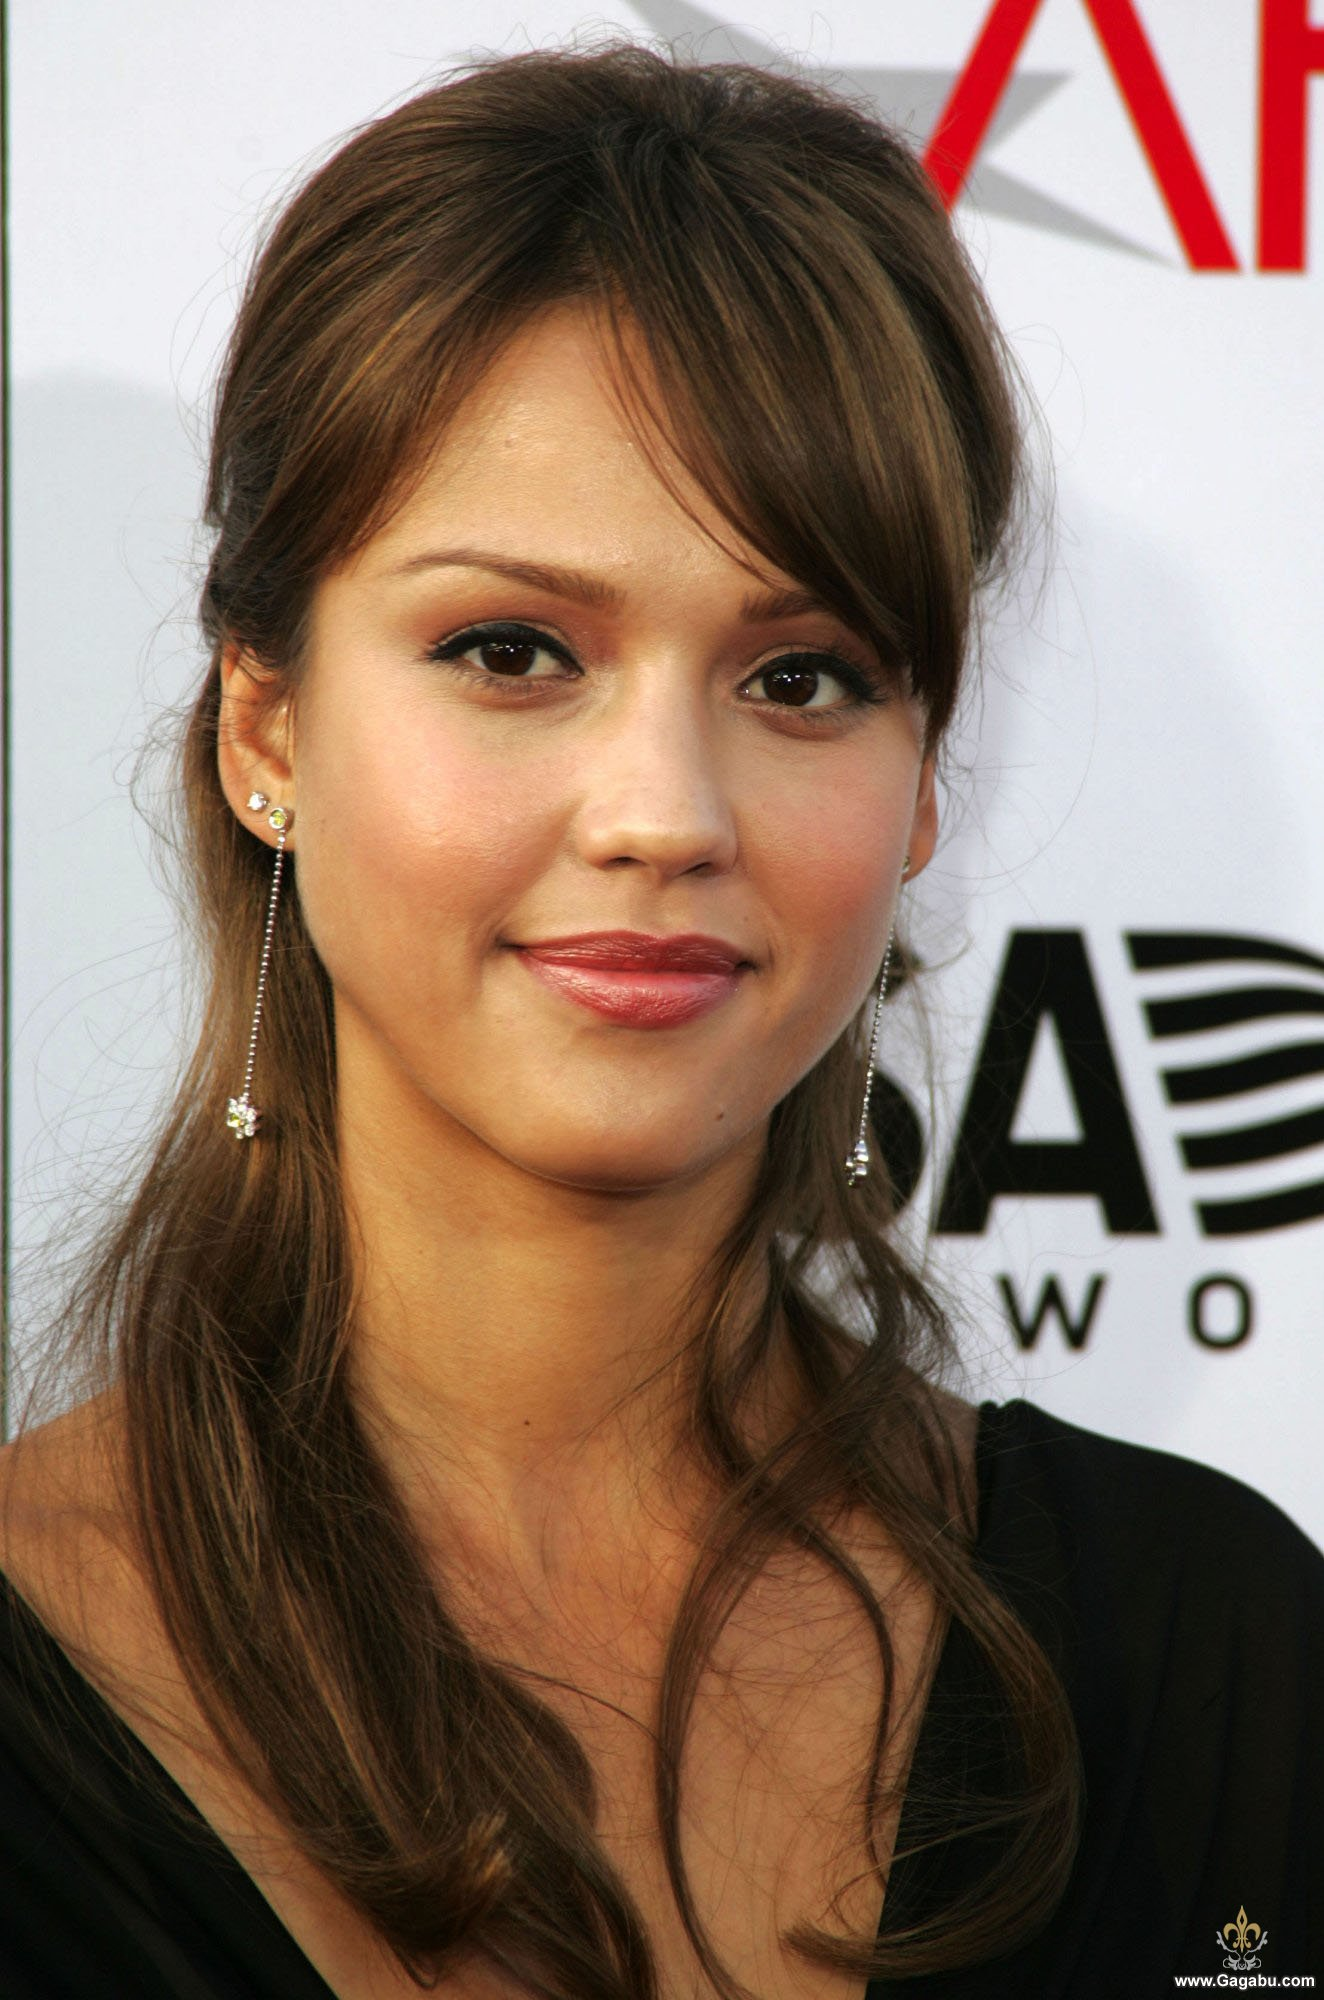 Jessica Alba photo 555 of 6624 pics, wallpaper - photo ... Jessica Alba Honest Company